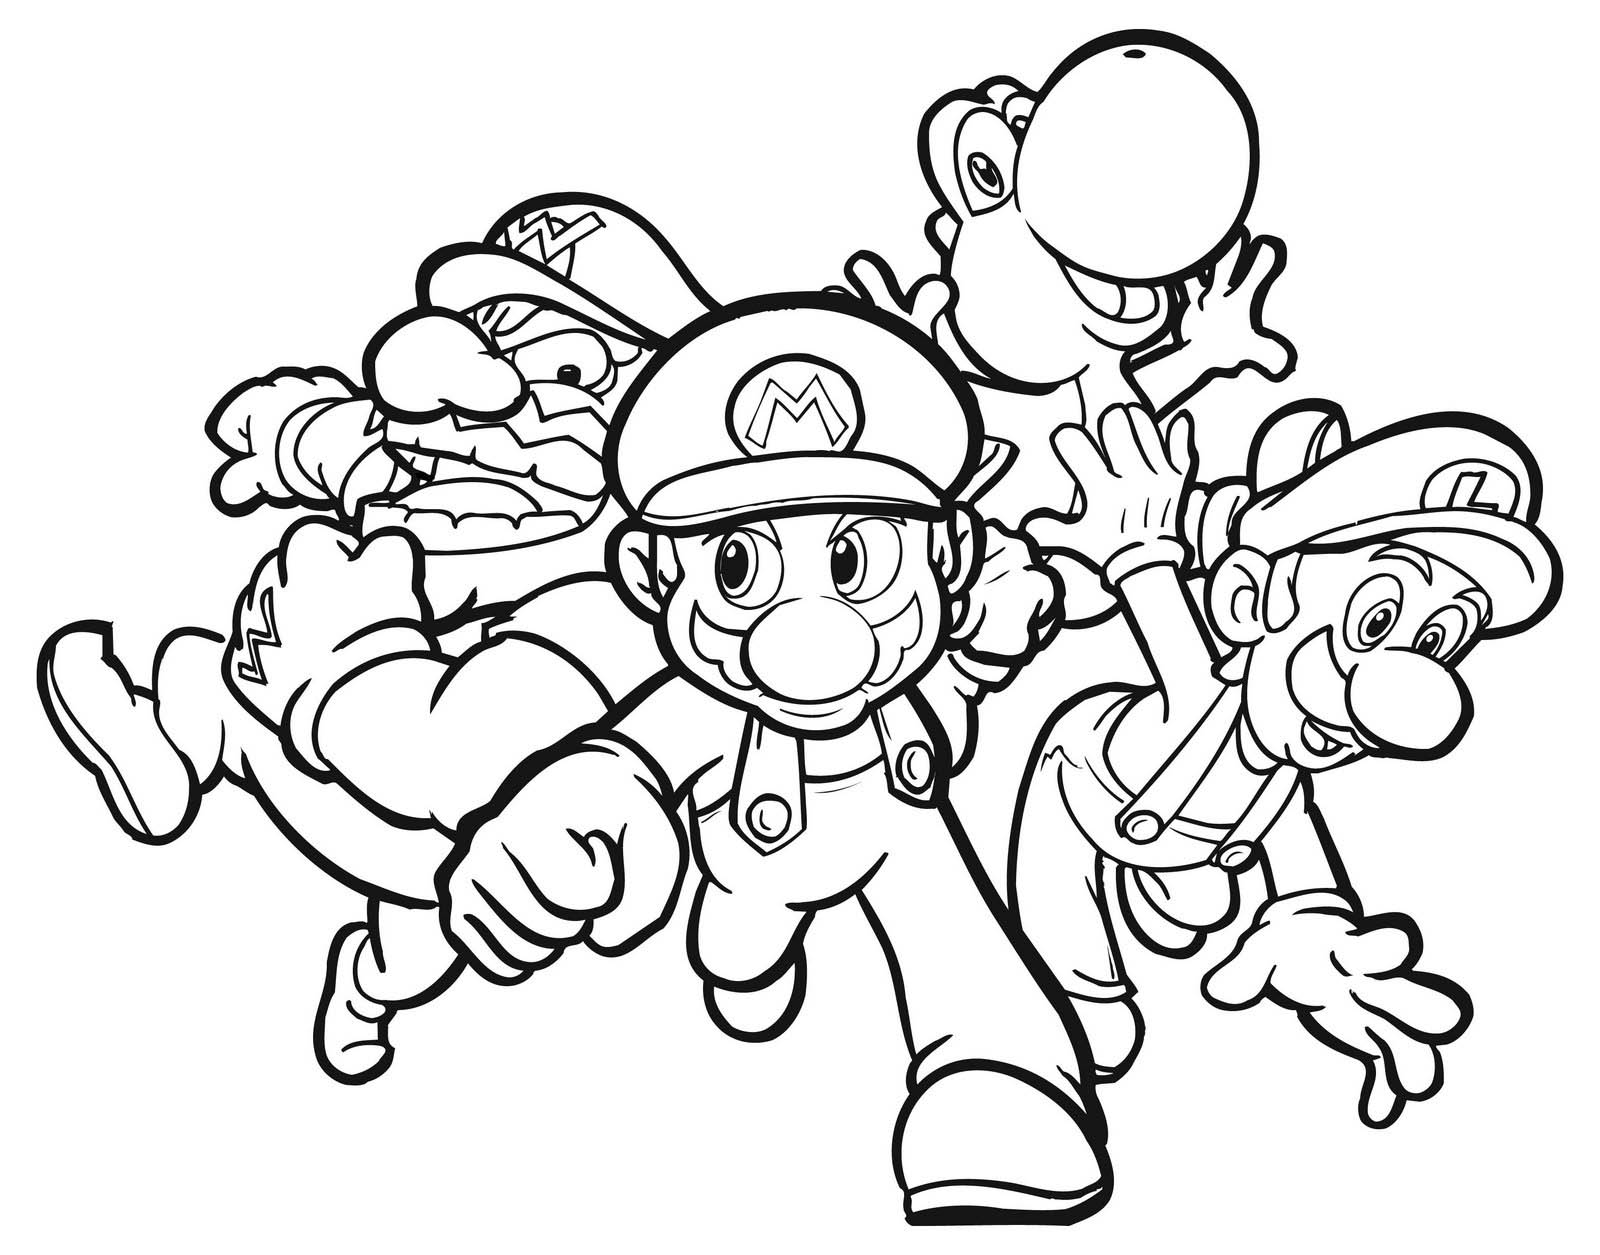 Disney Coloring Pages 9 Free Mario Bros Coloring Pages